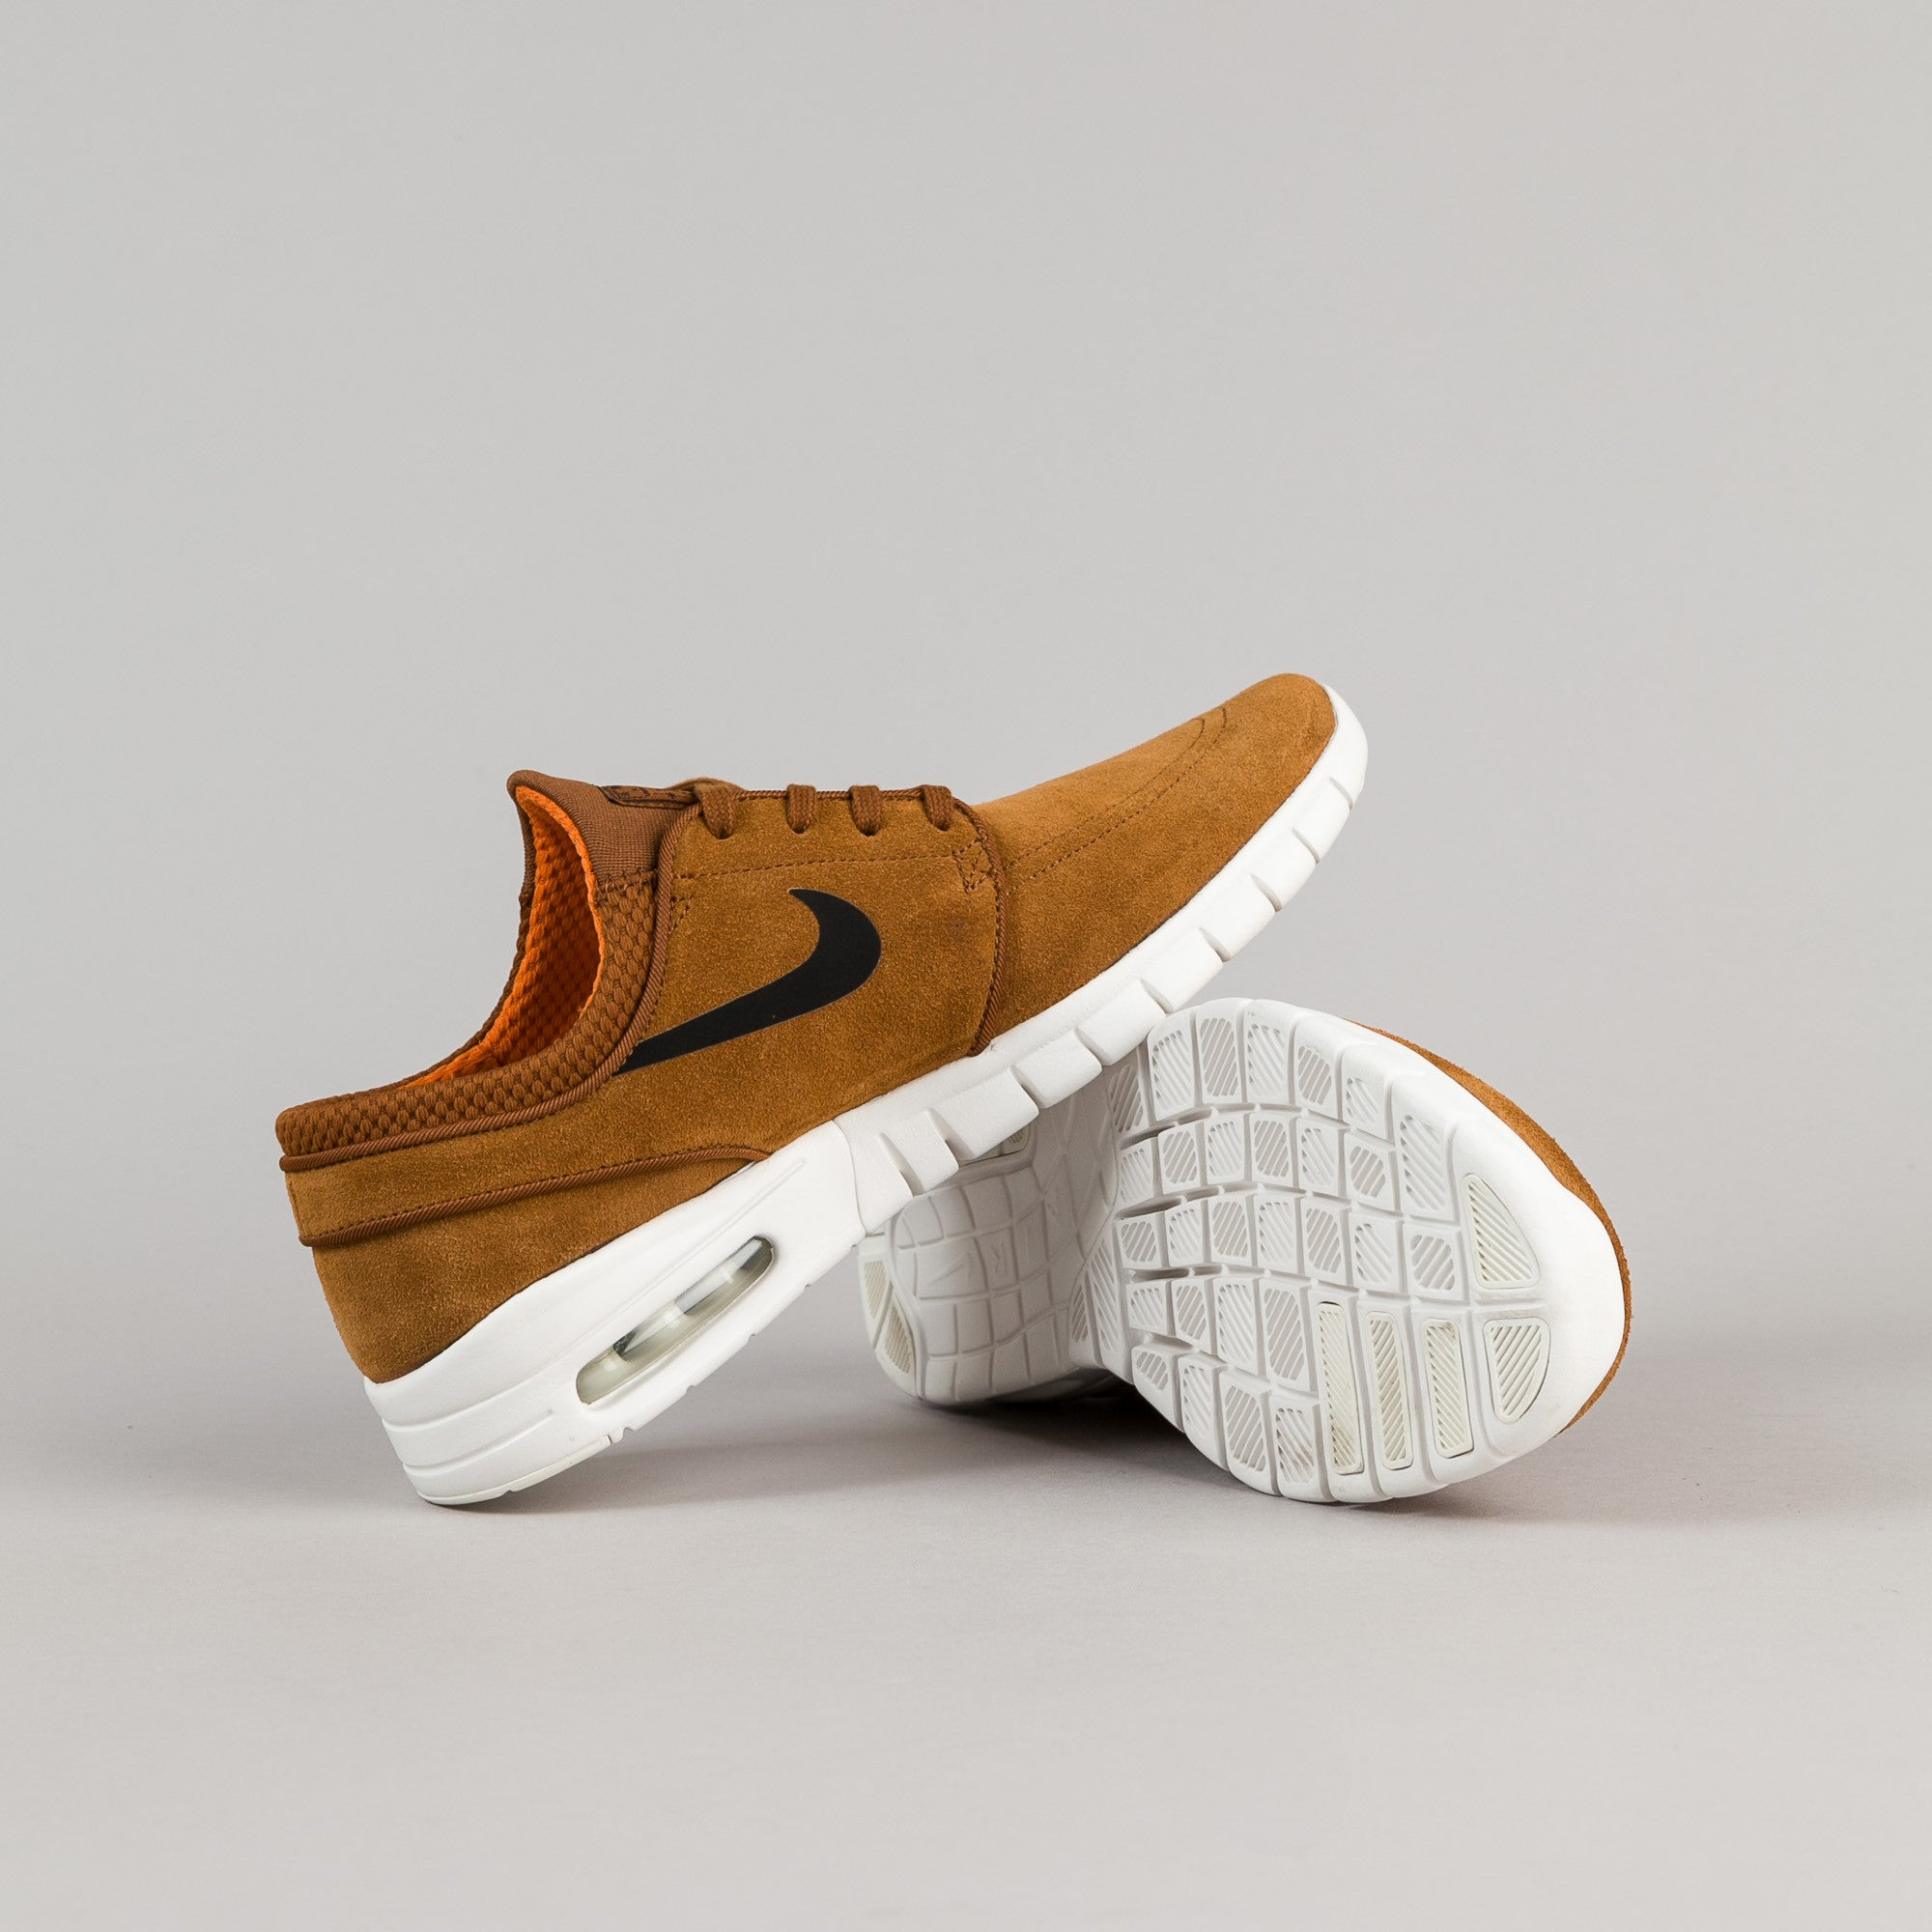 quality design 78517 fc90a ... Nike SB Stefan Janoski Max Suede Shoes - Hazelnut   Black - Ivory -  Clay Orange ...